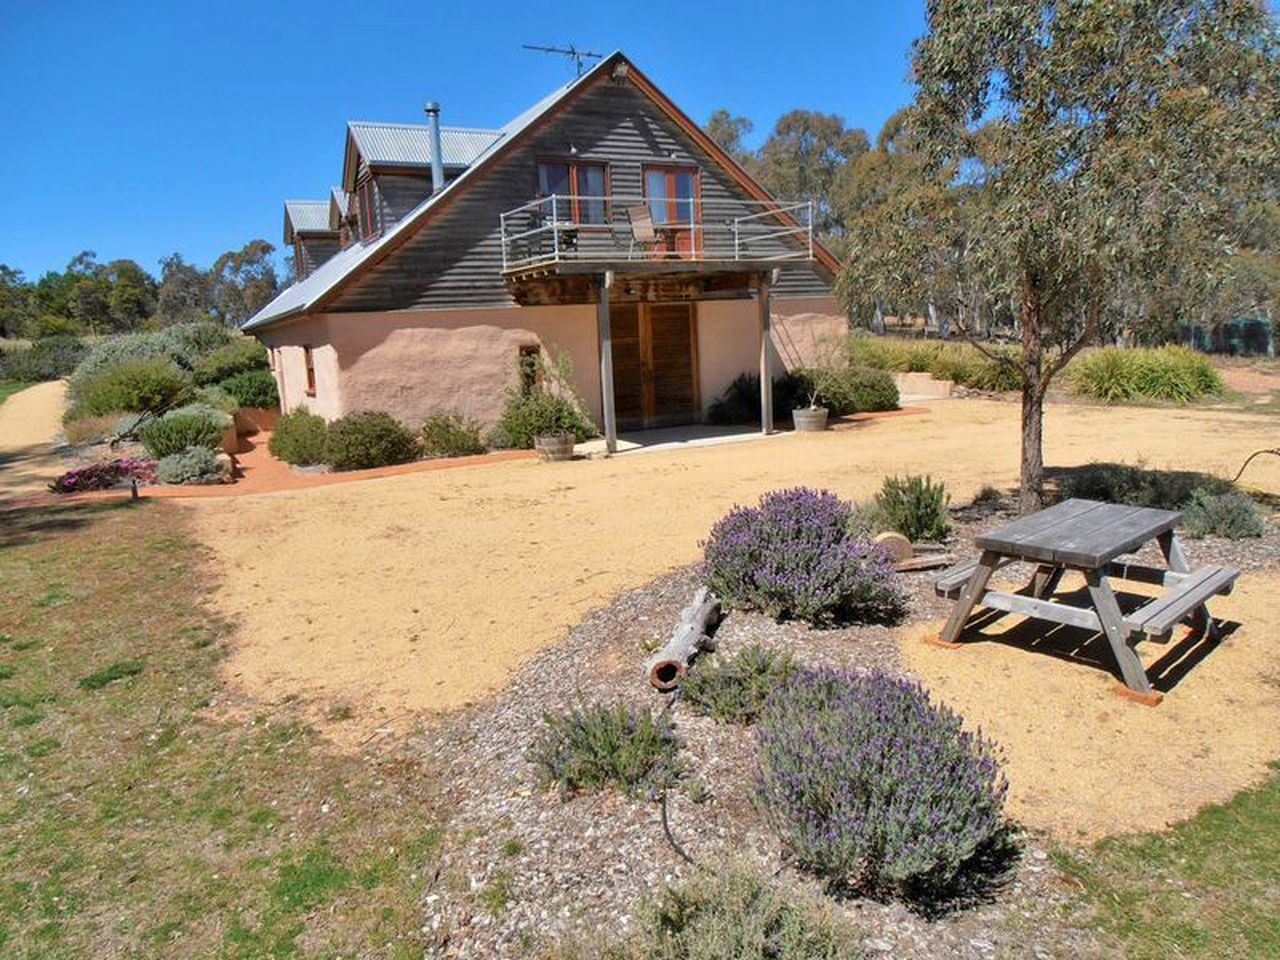 The most idyllic cabins that you won't find on gumtree. Canberra, New South Wales